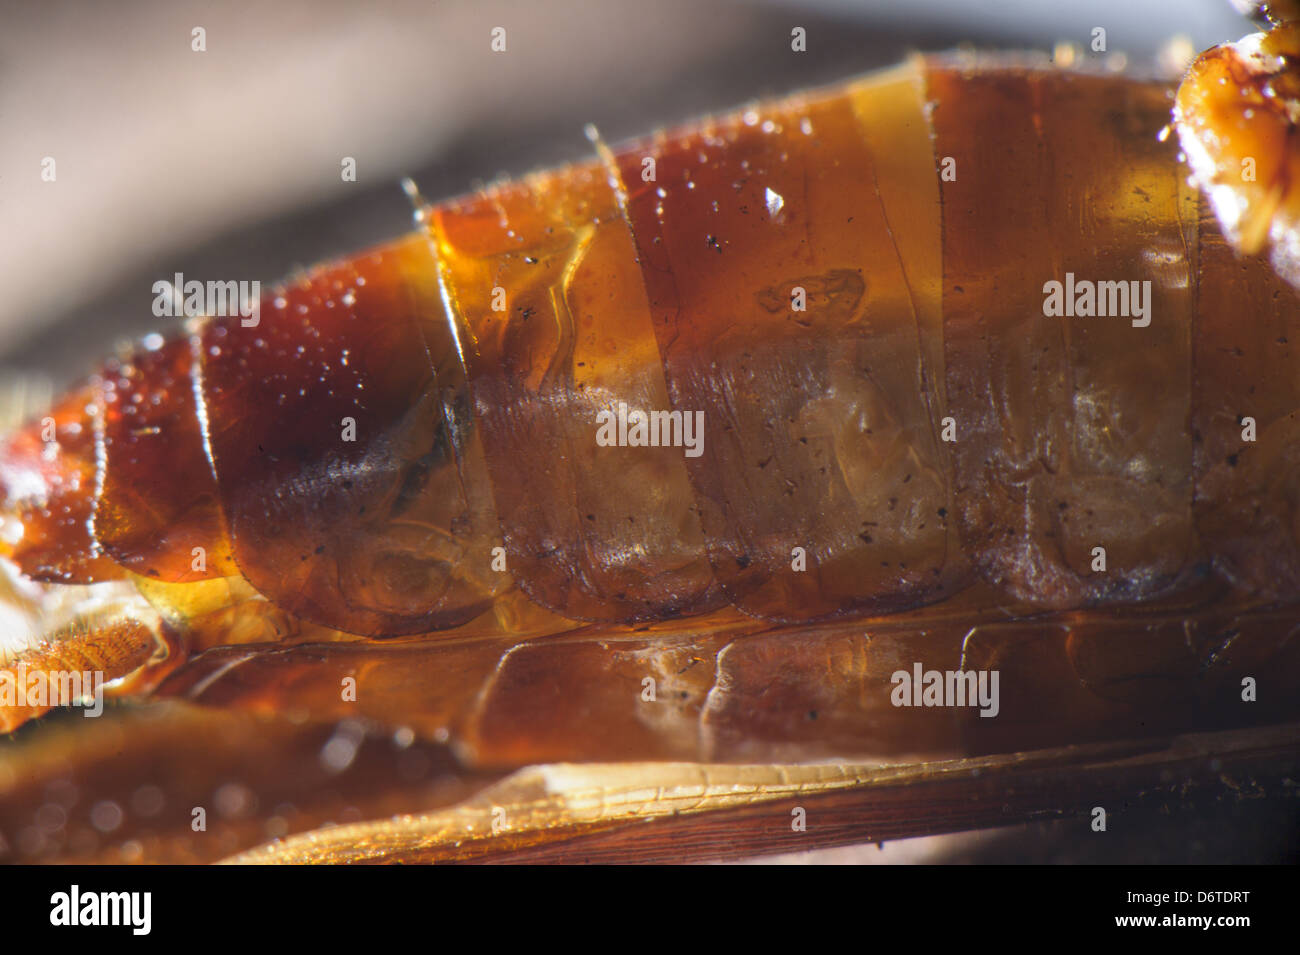 Emerald Cockroach Wasp Ampulex compressa larva inside body American Cockroach Periplaneta americana host South Asia - Stock Image